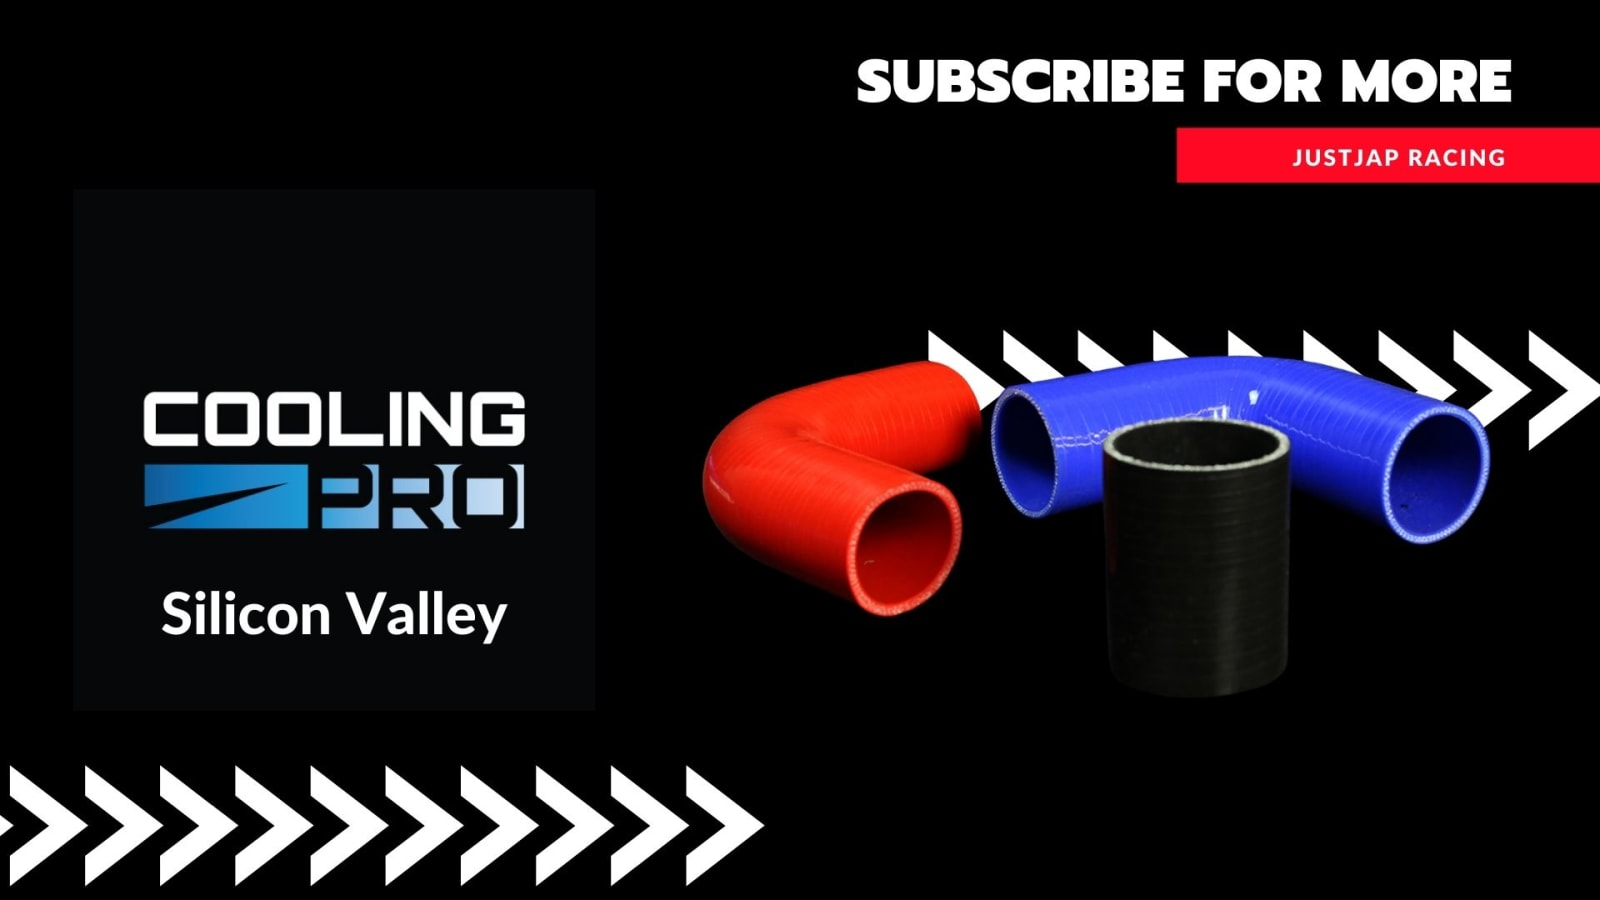 Cooling Pro Silicone 1 Inch / 25mm 180 Degree Bend Hose